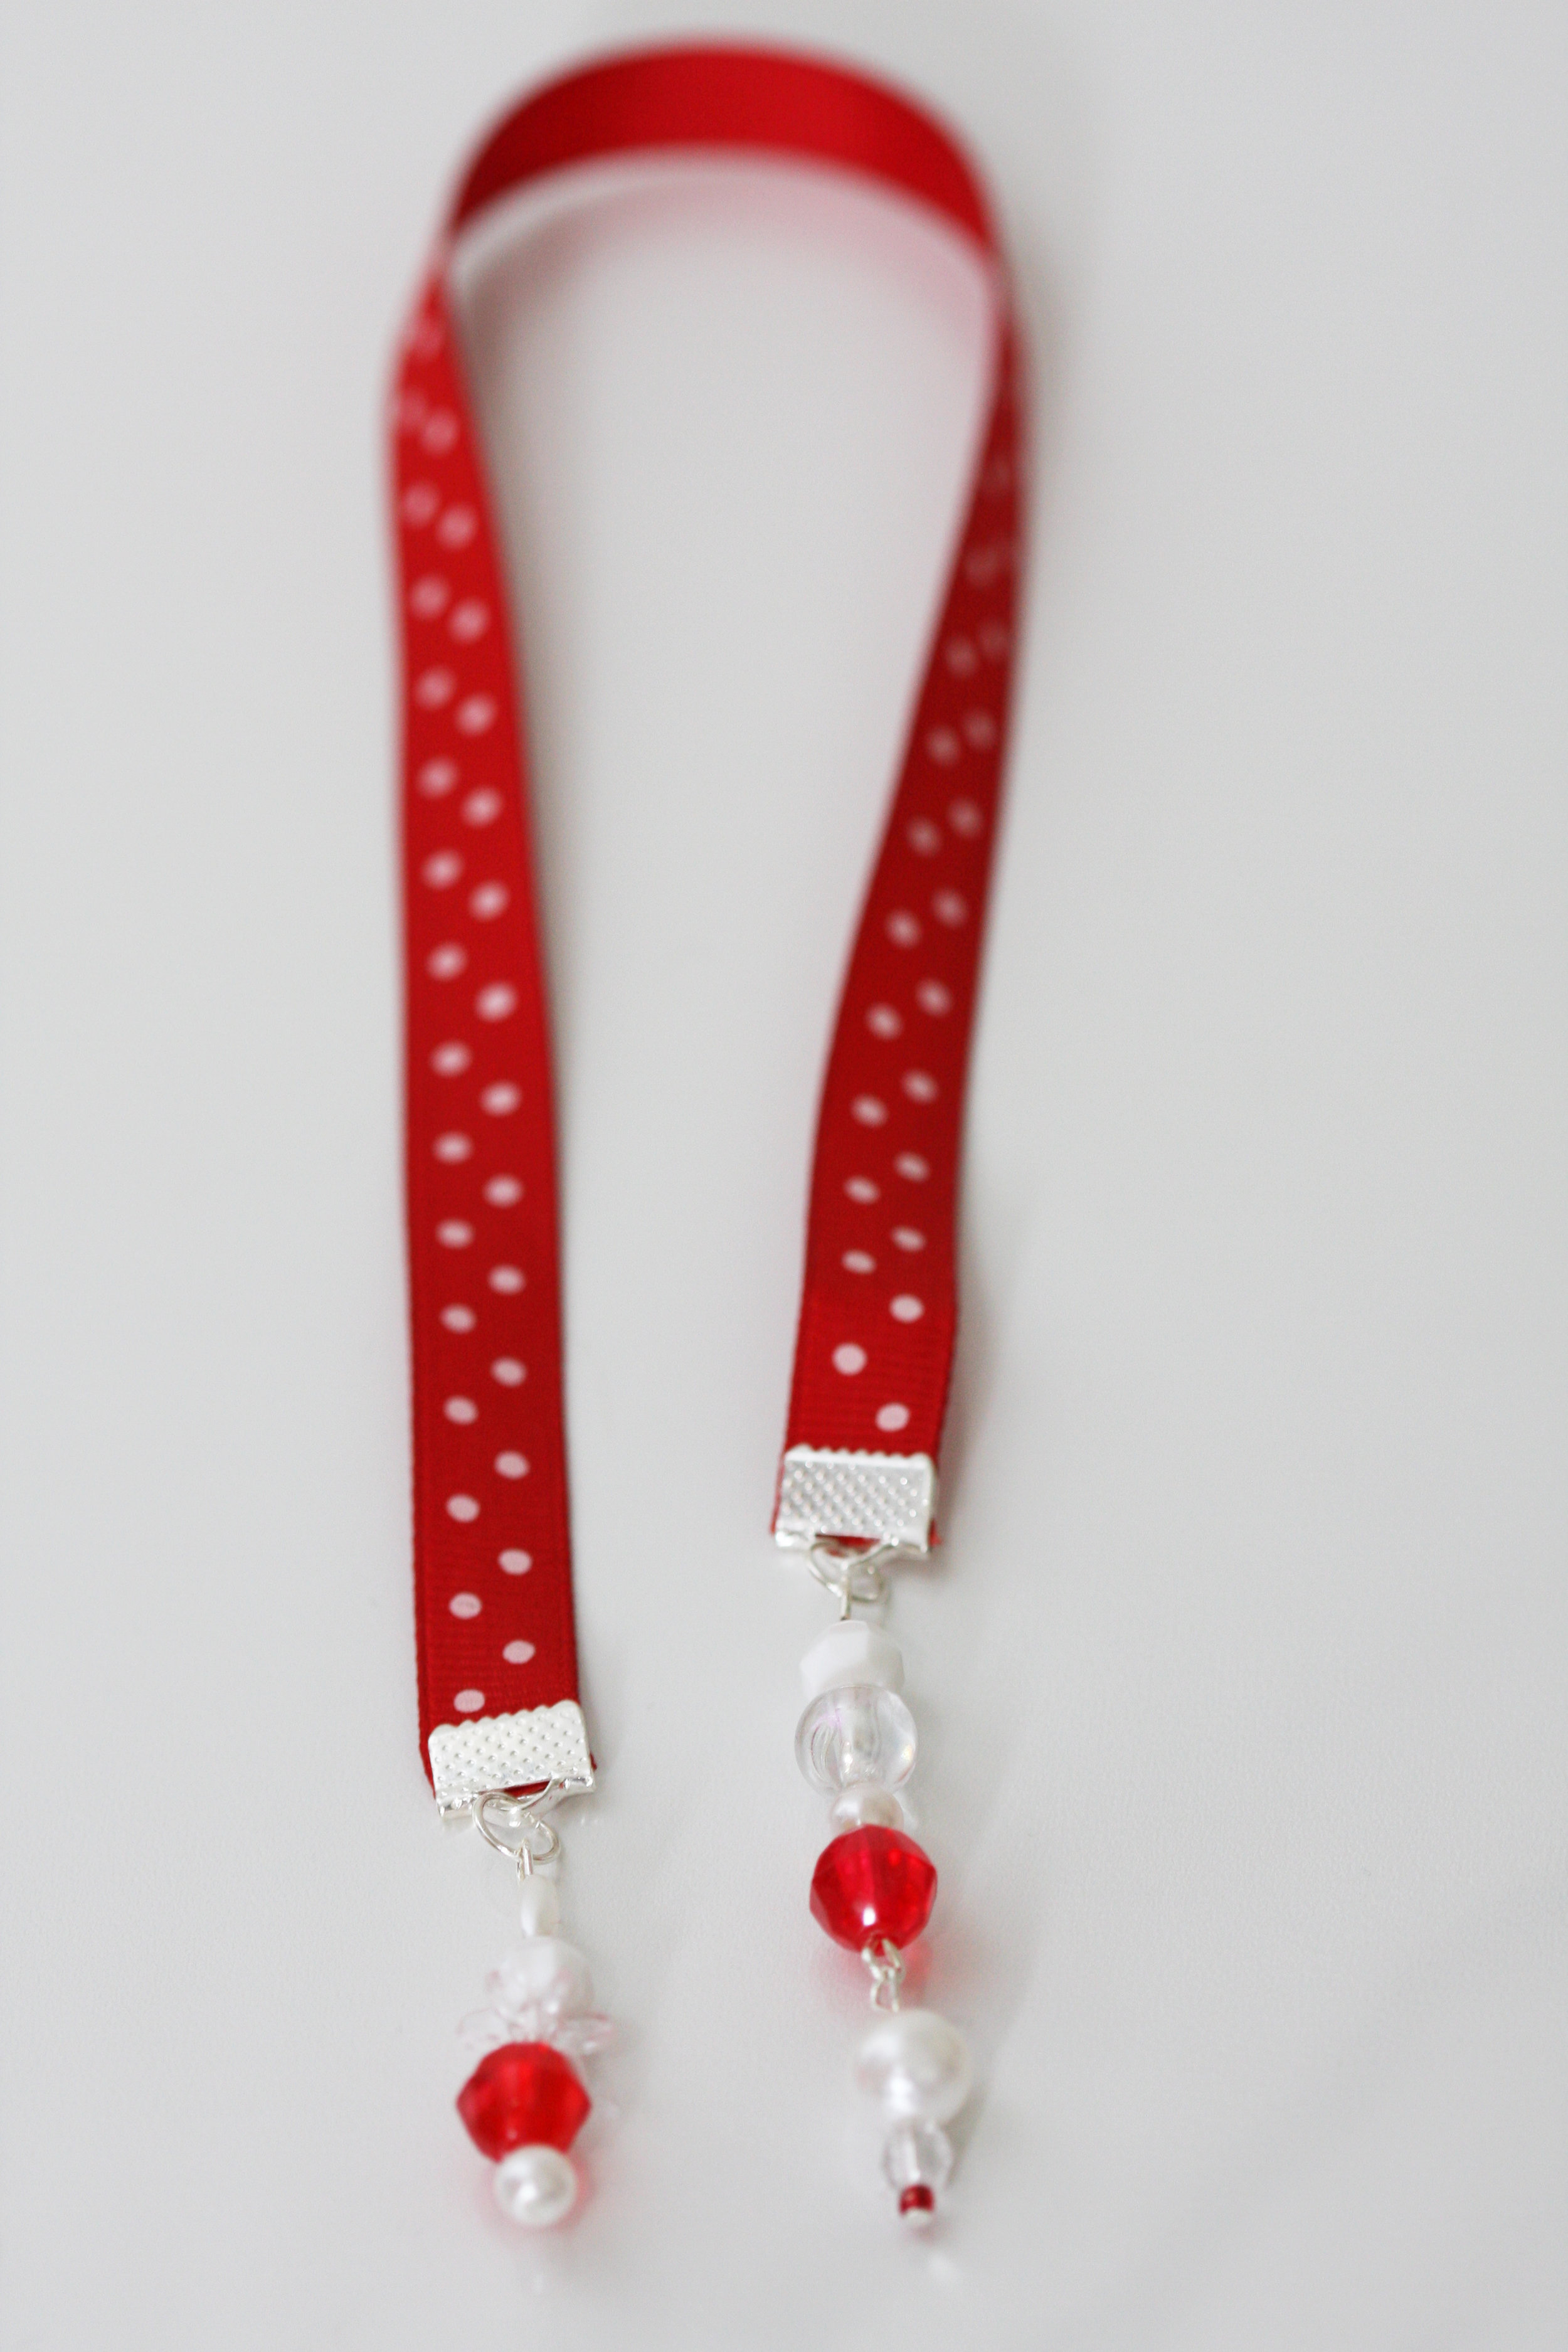 Retro-inspired beaded ribbon bookmark with polka dots a la Lucille Ball.